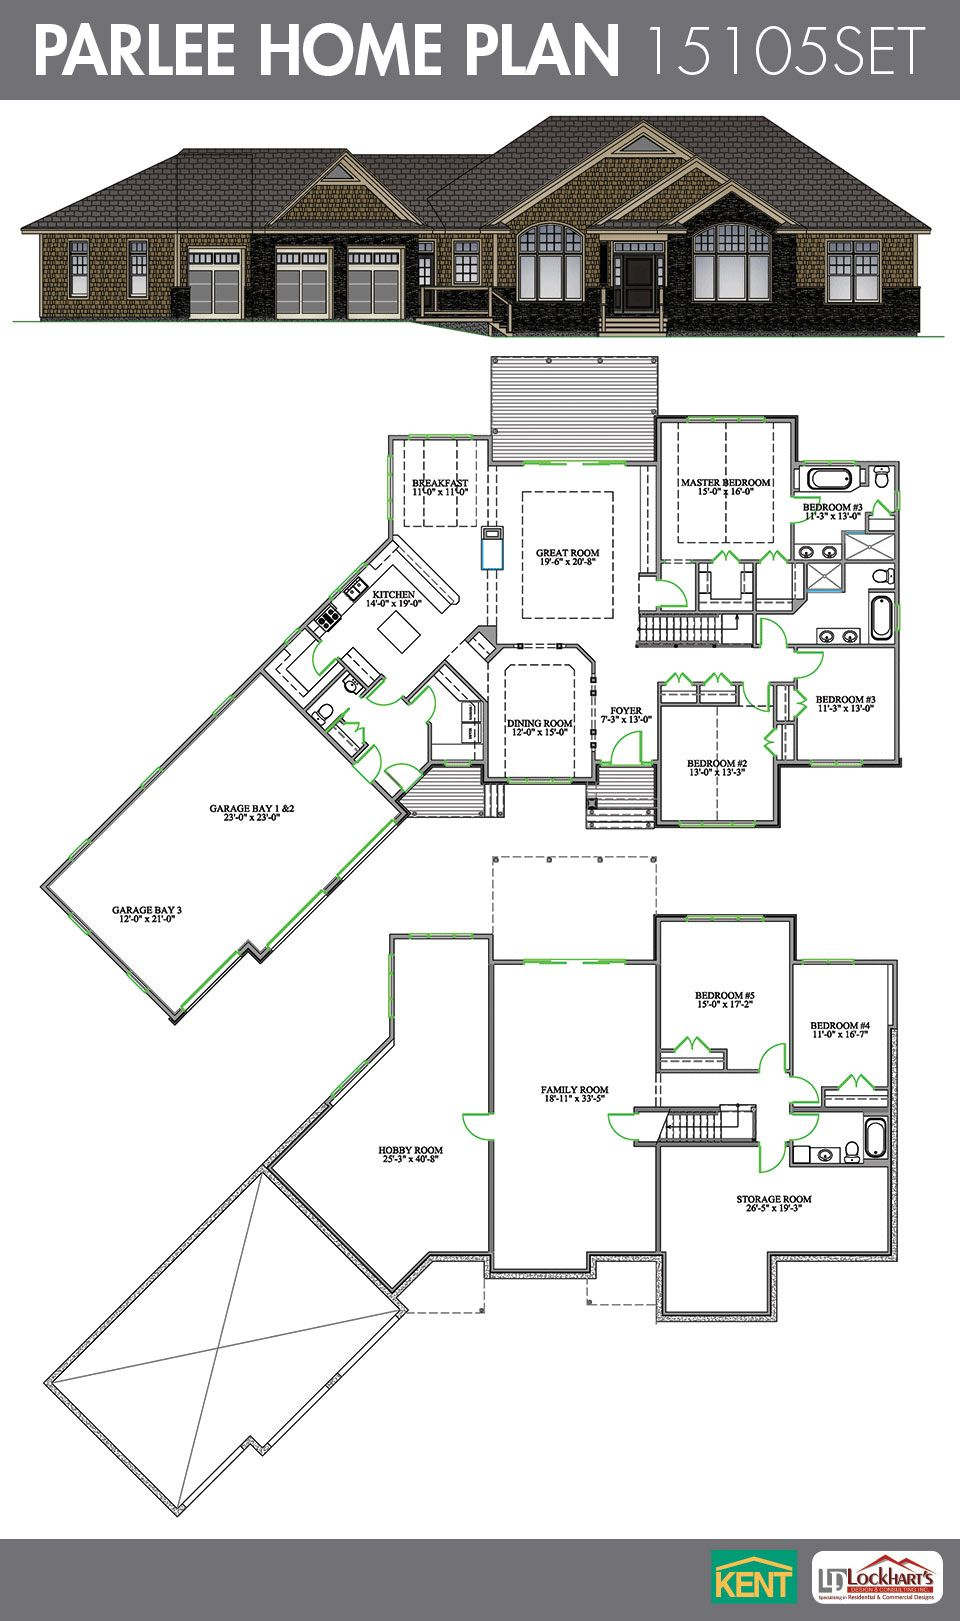 Parlee Home Plan House Plans Simple Ranch House Plans Beach House Plans